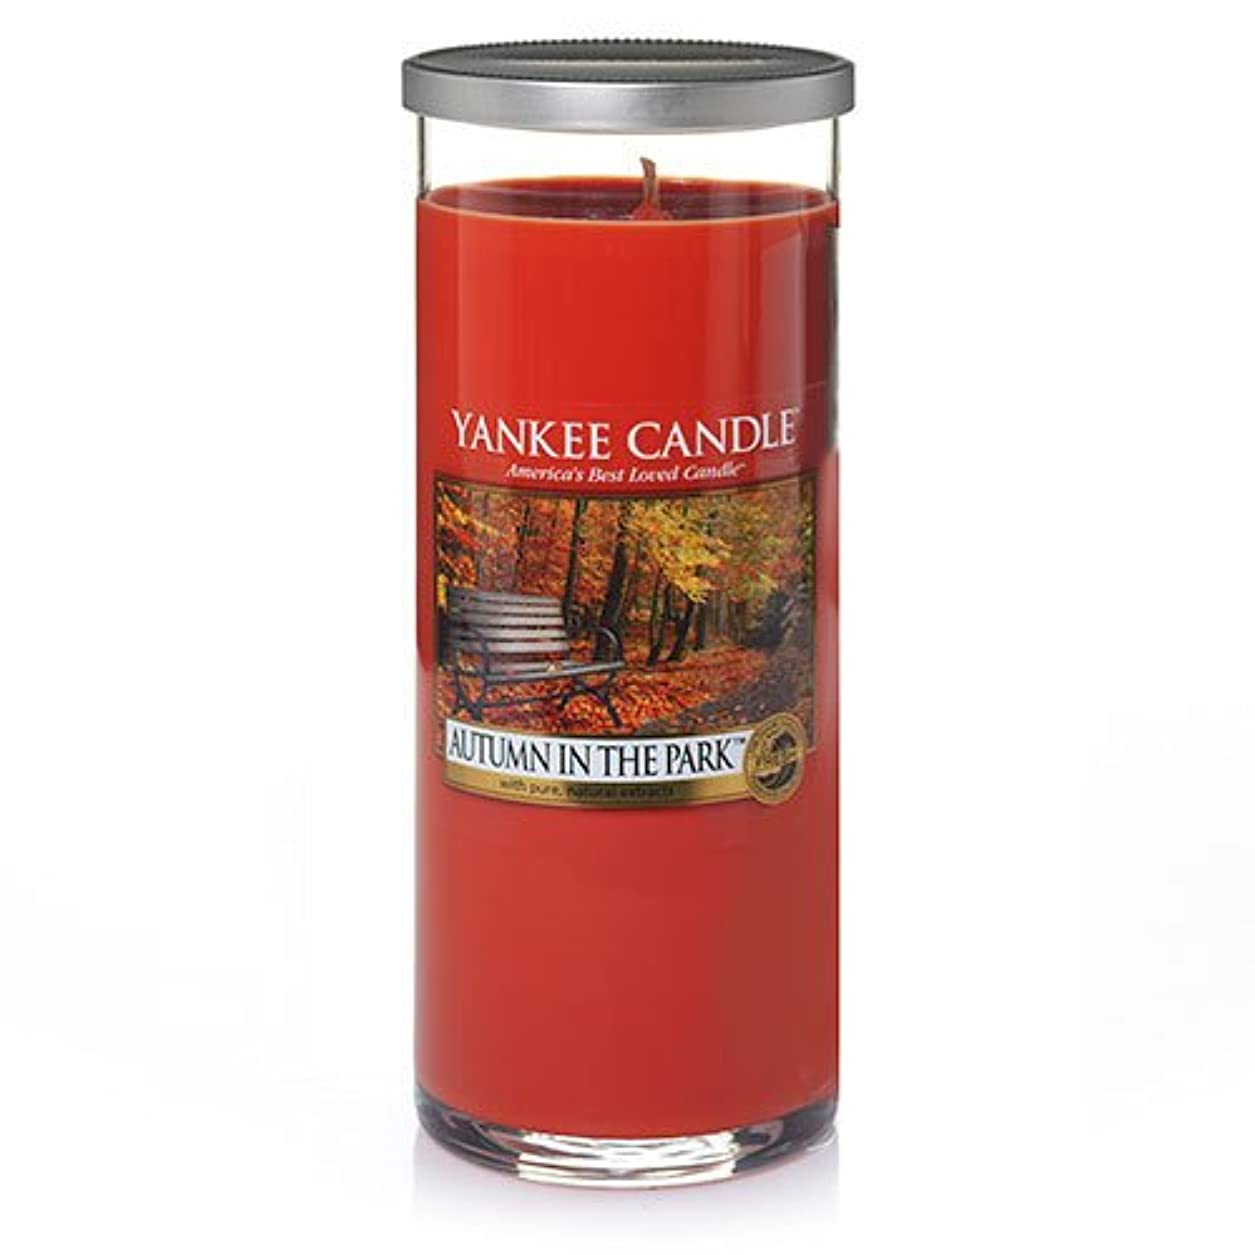 安らぎ守る腹痛Yankee Candle Autumn In The Park Large Perfect Pillar Candle、新鮮な香り